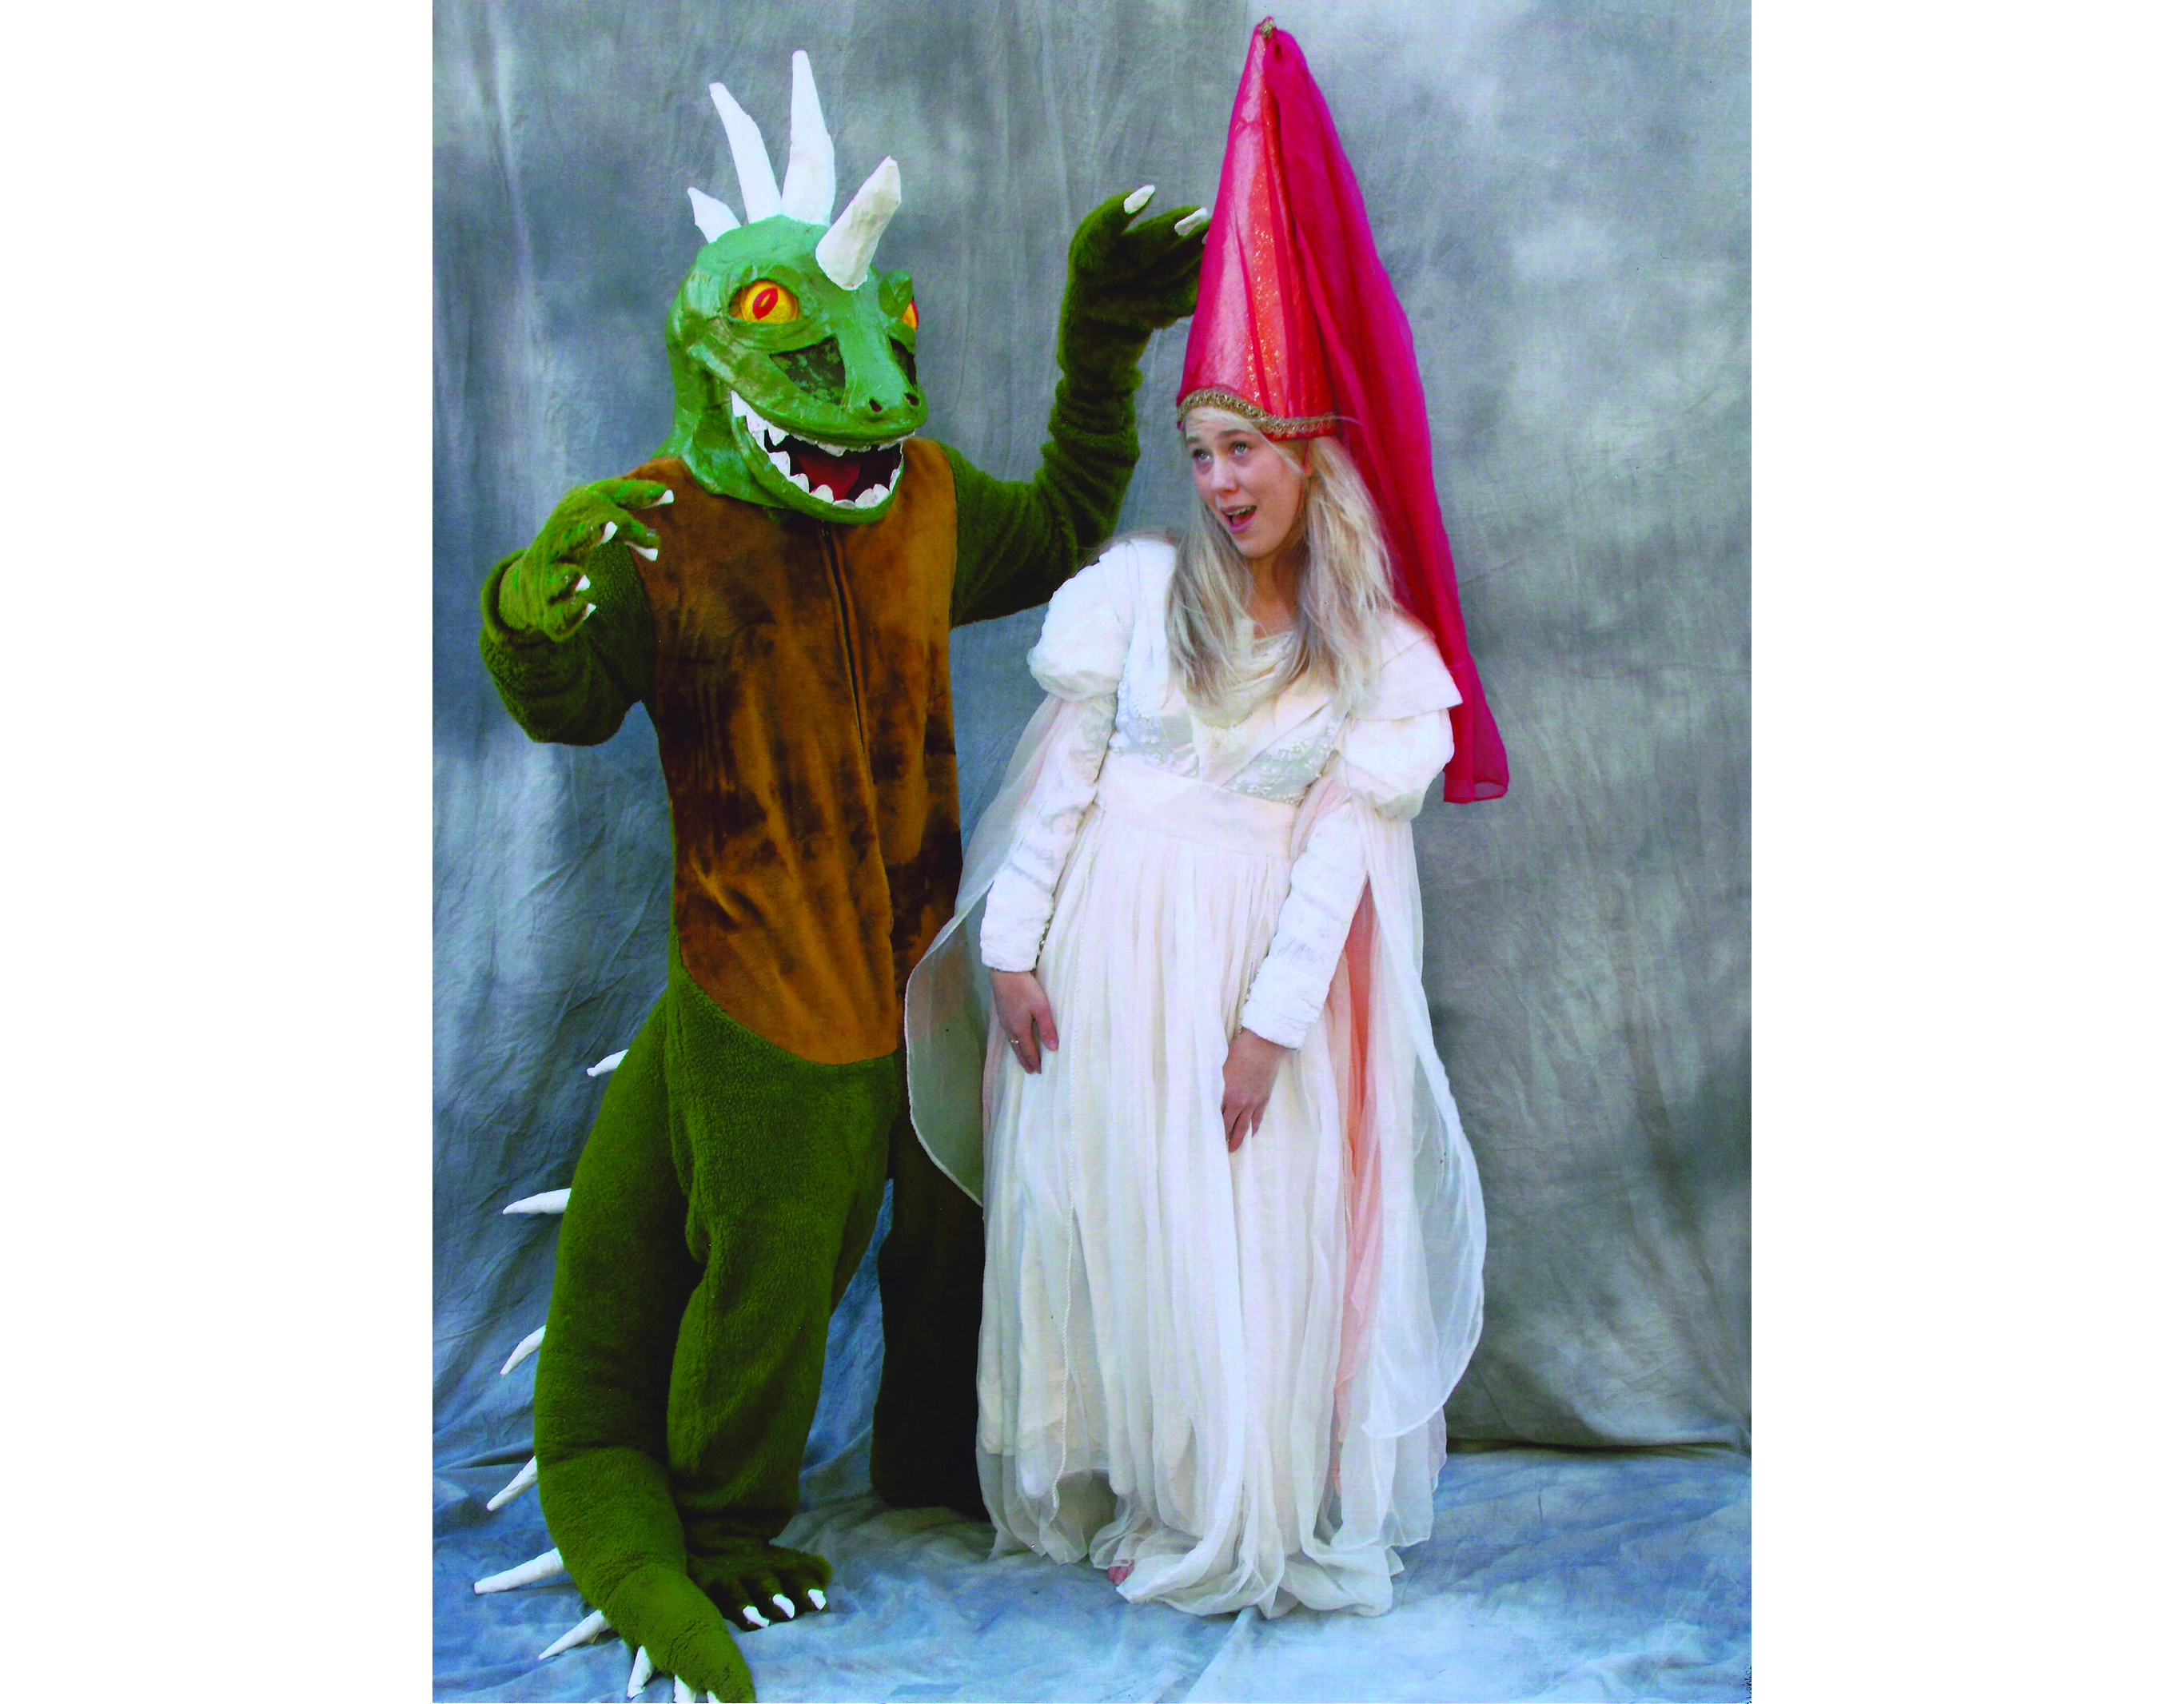 northwest costume shops are go-to resources for themed events